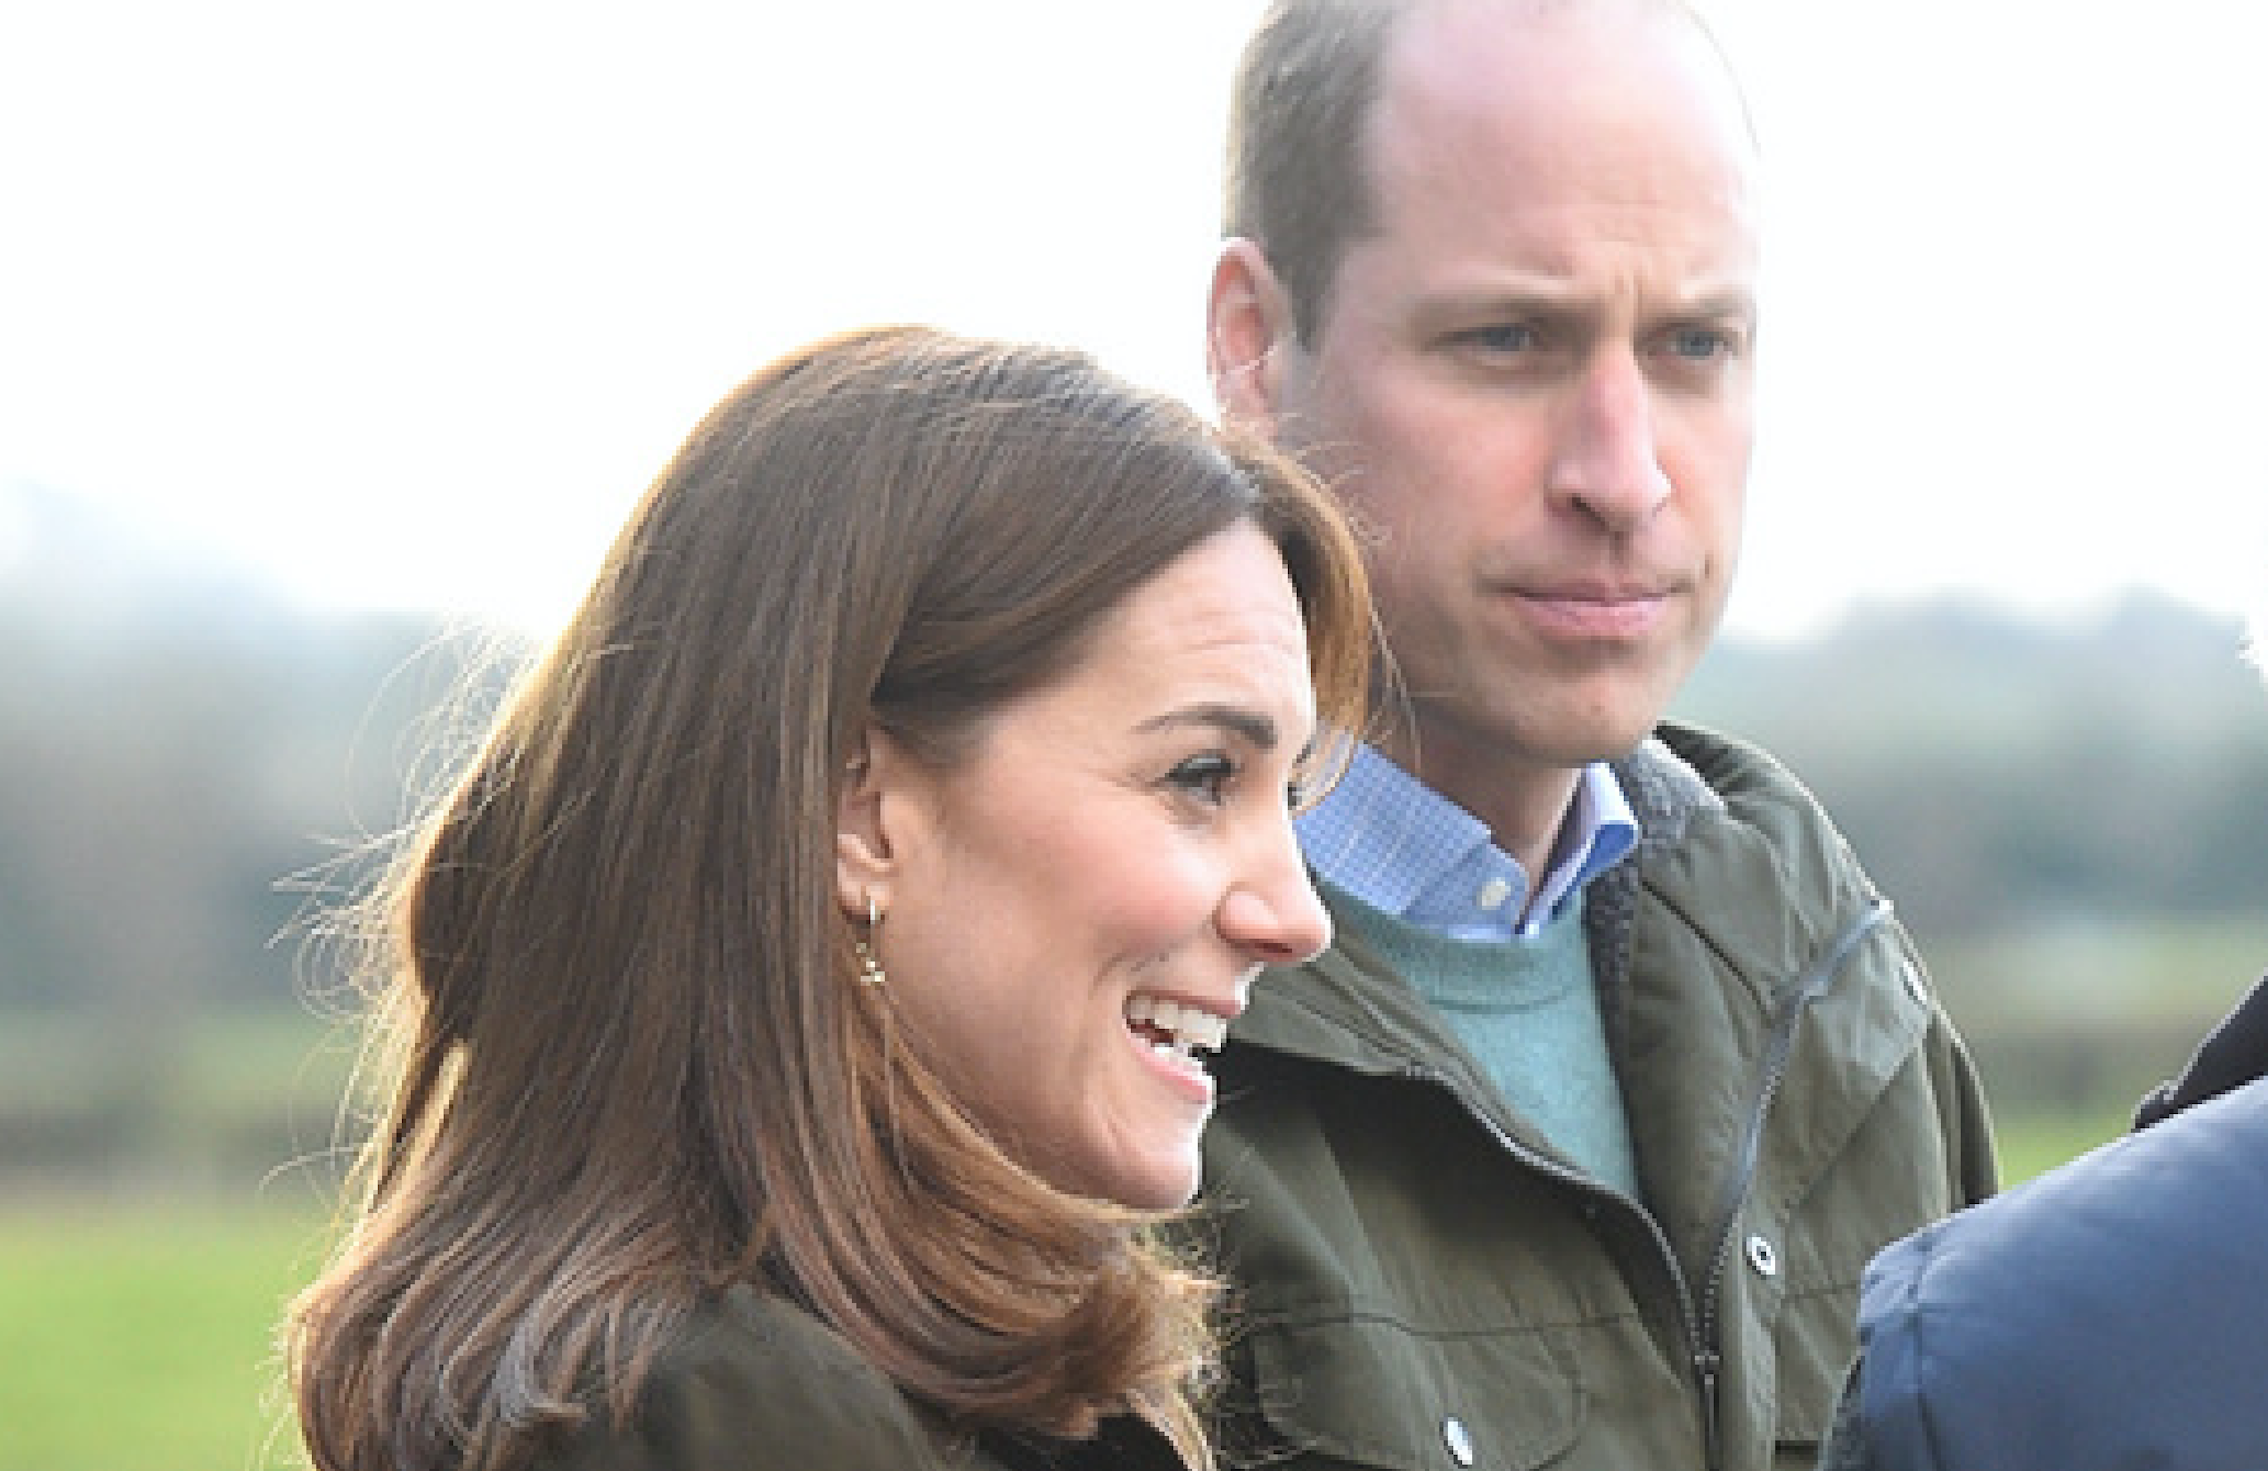 Prince William and Kate Middleton 'could cancel Australia tour' over coronavirus fears